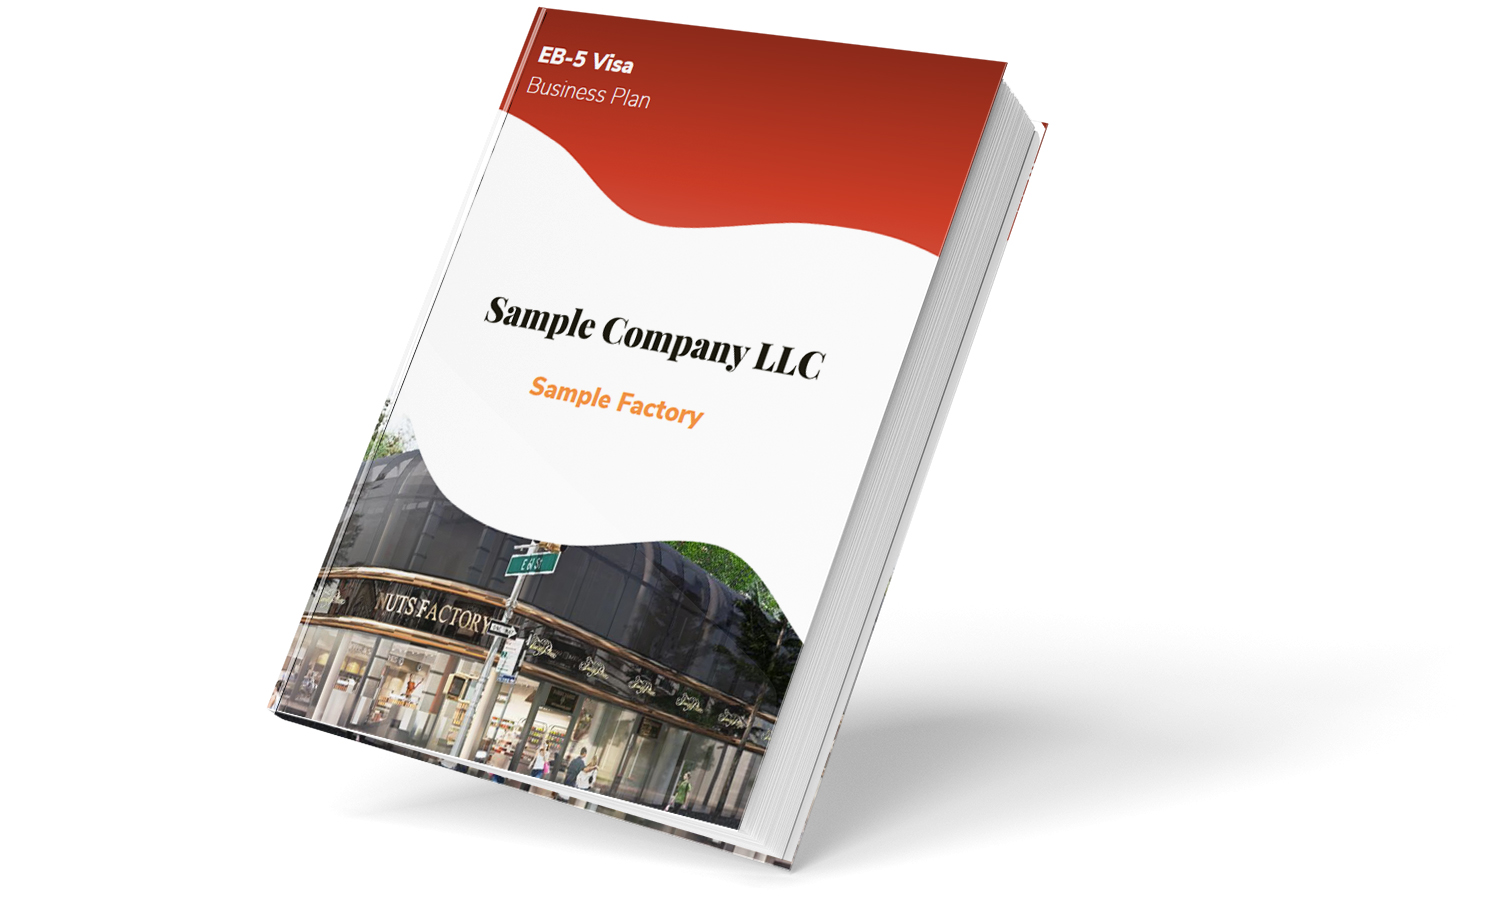 Eb5 cover business plan 2-1